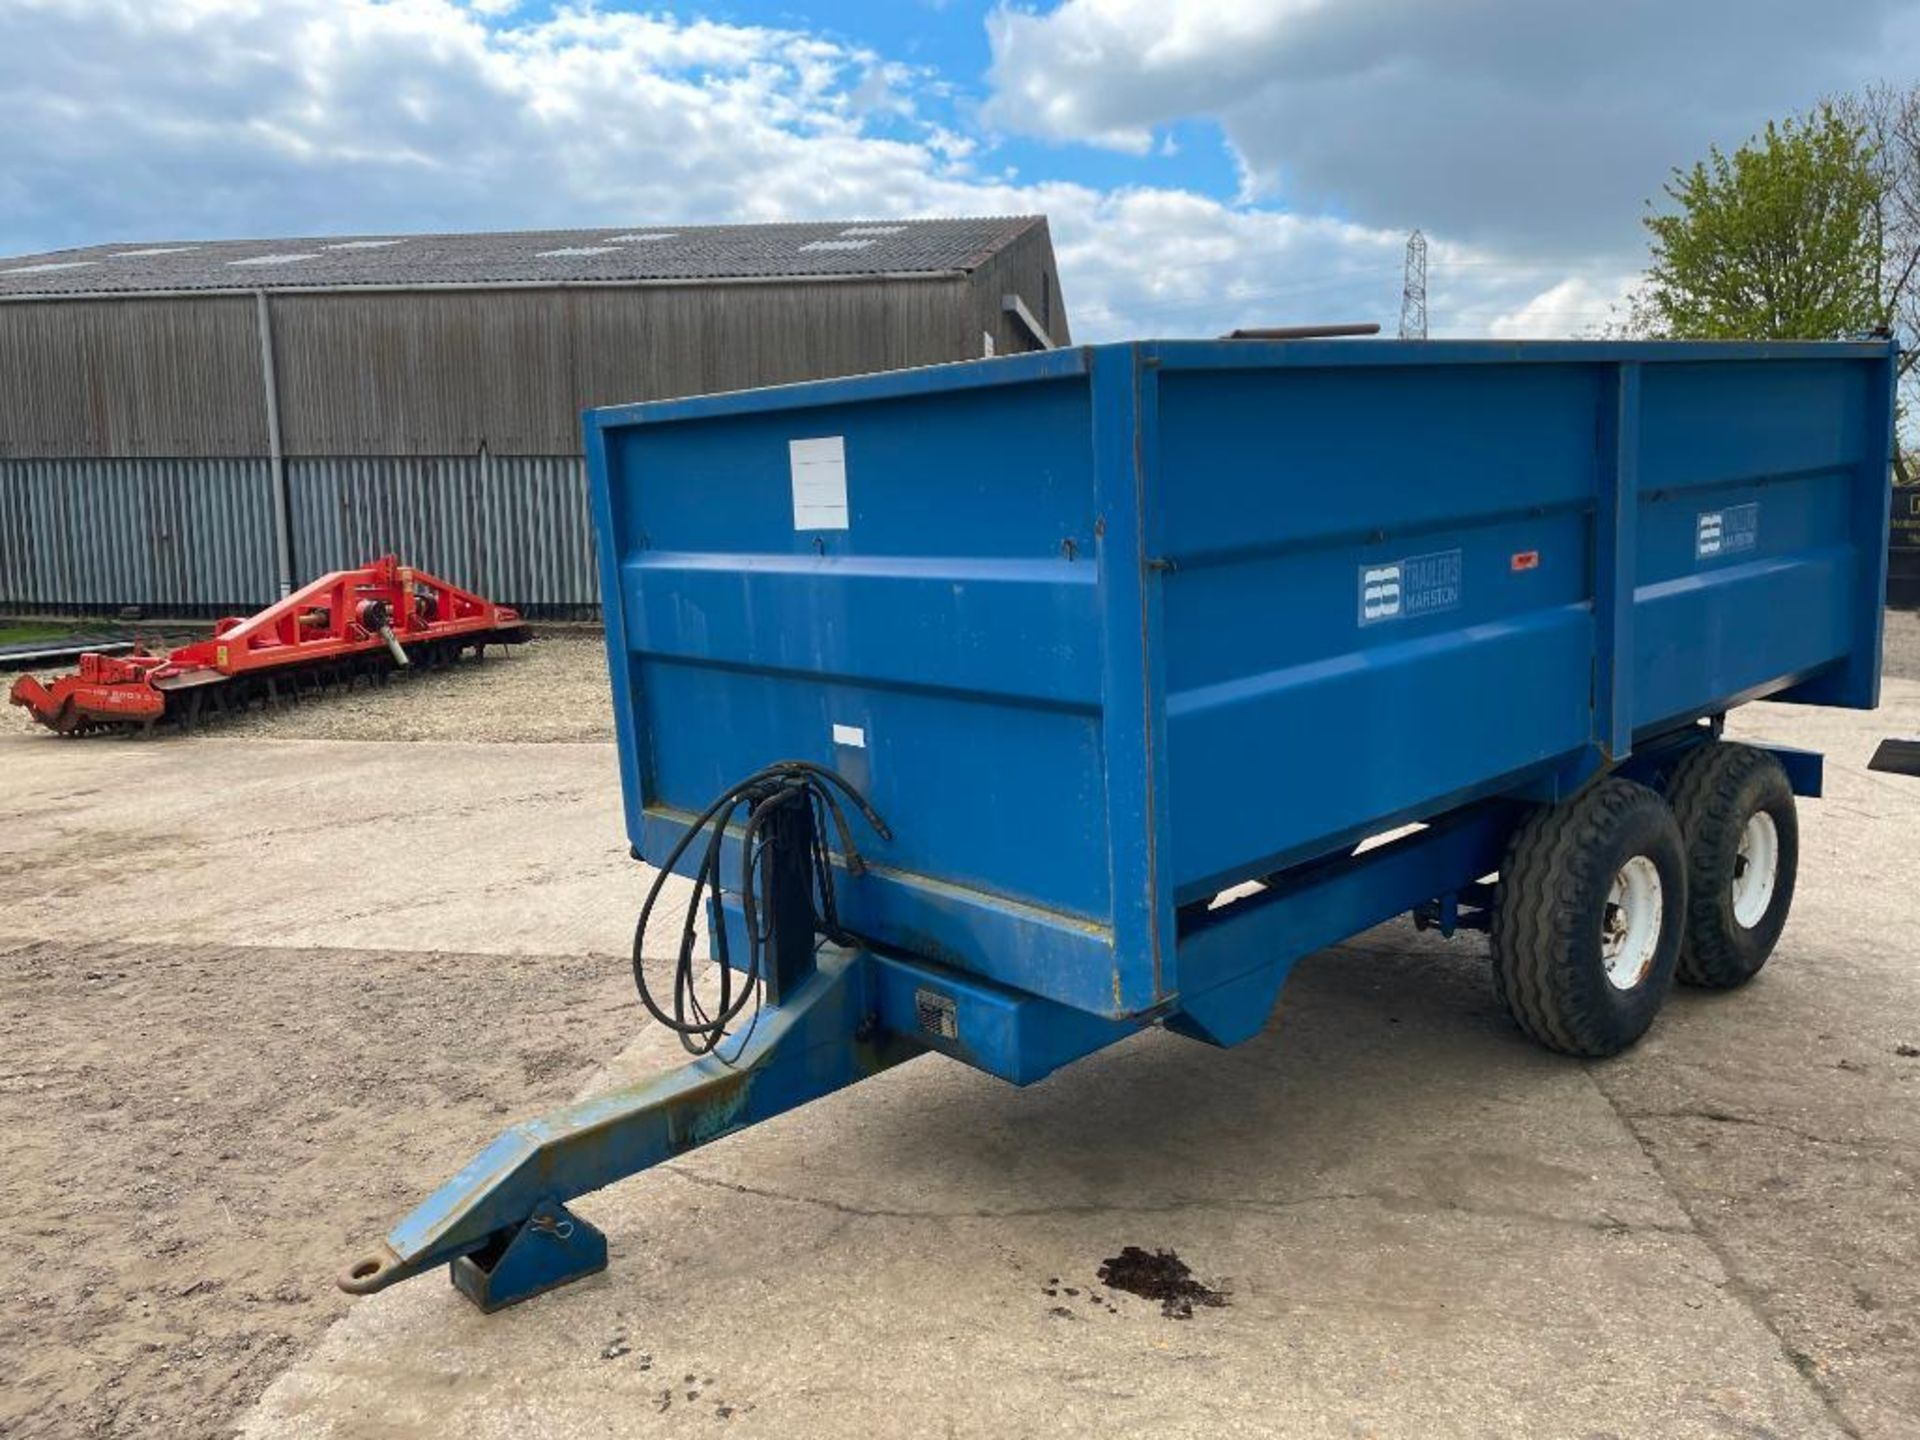 1986 AS Marston 8t twin axle grain trailer, manual tailgate and grain chute on 12.5/80-15.3 wheels a - Image 12 of 14